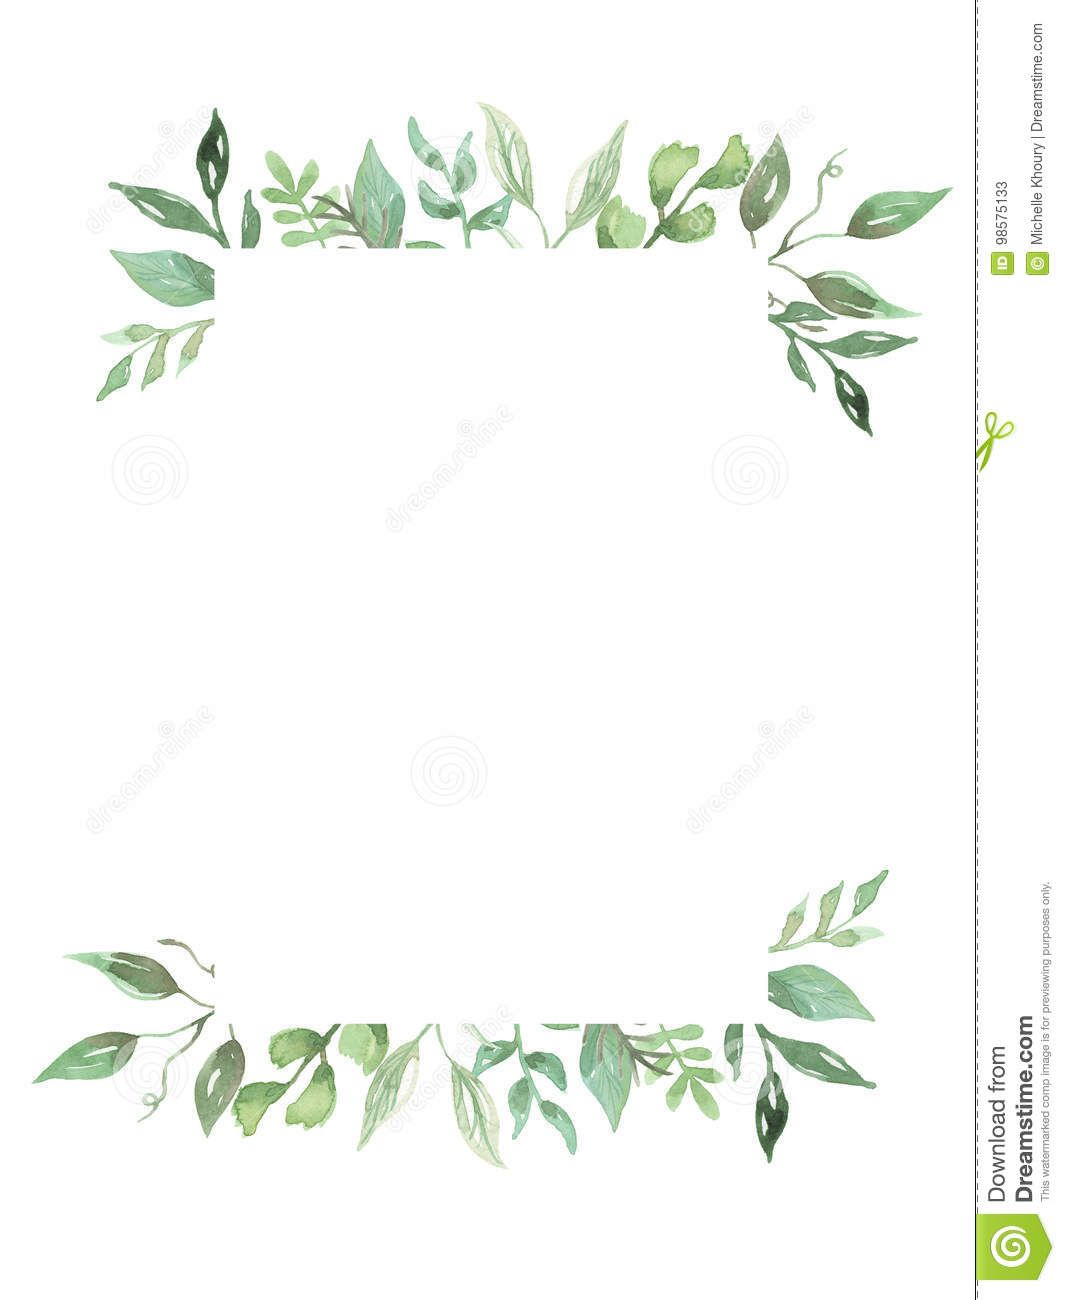 Greenery clipart free image black and white stock greenery clipart free - Google Search | Wedding in 2019 | Wedding ... image black and white stock